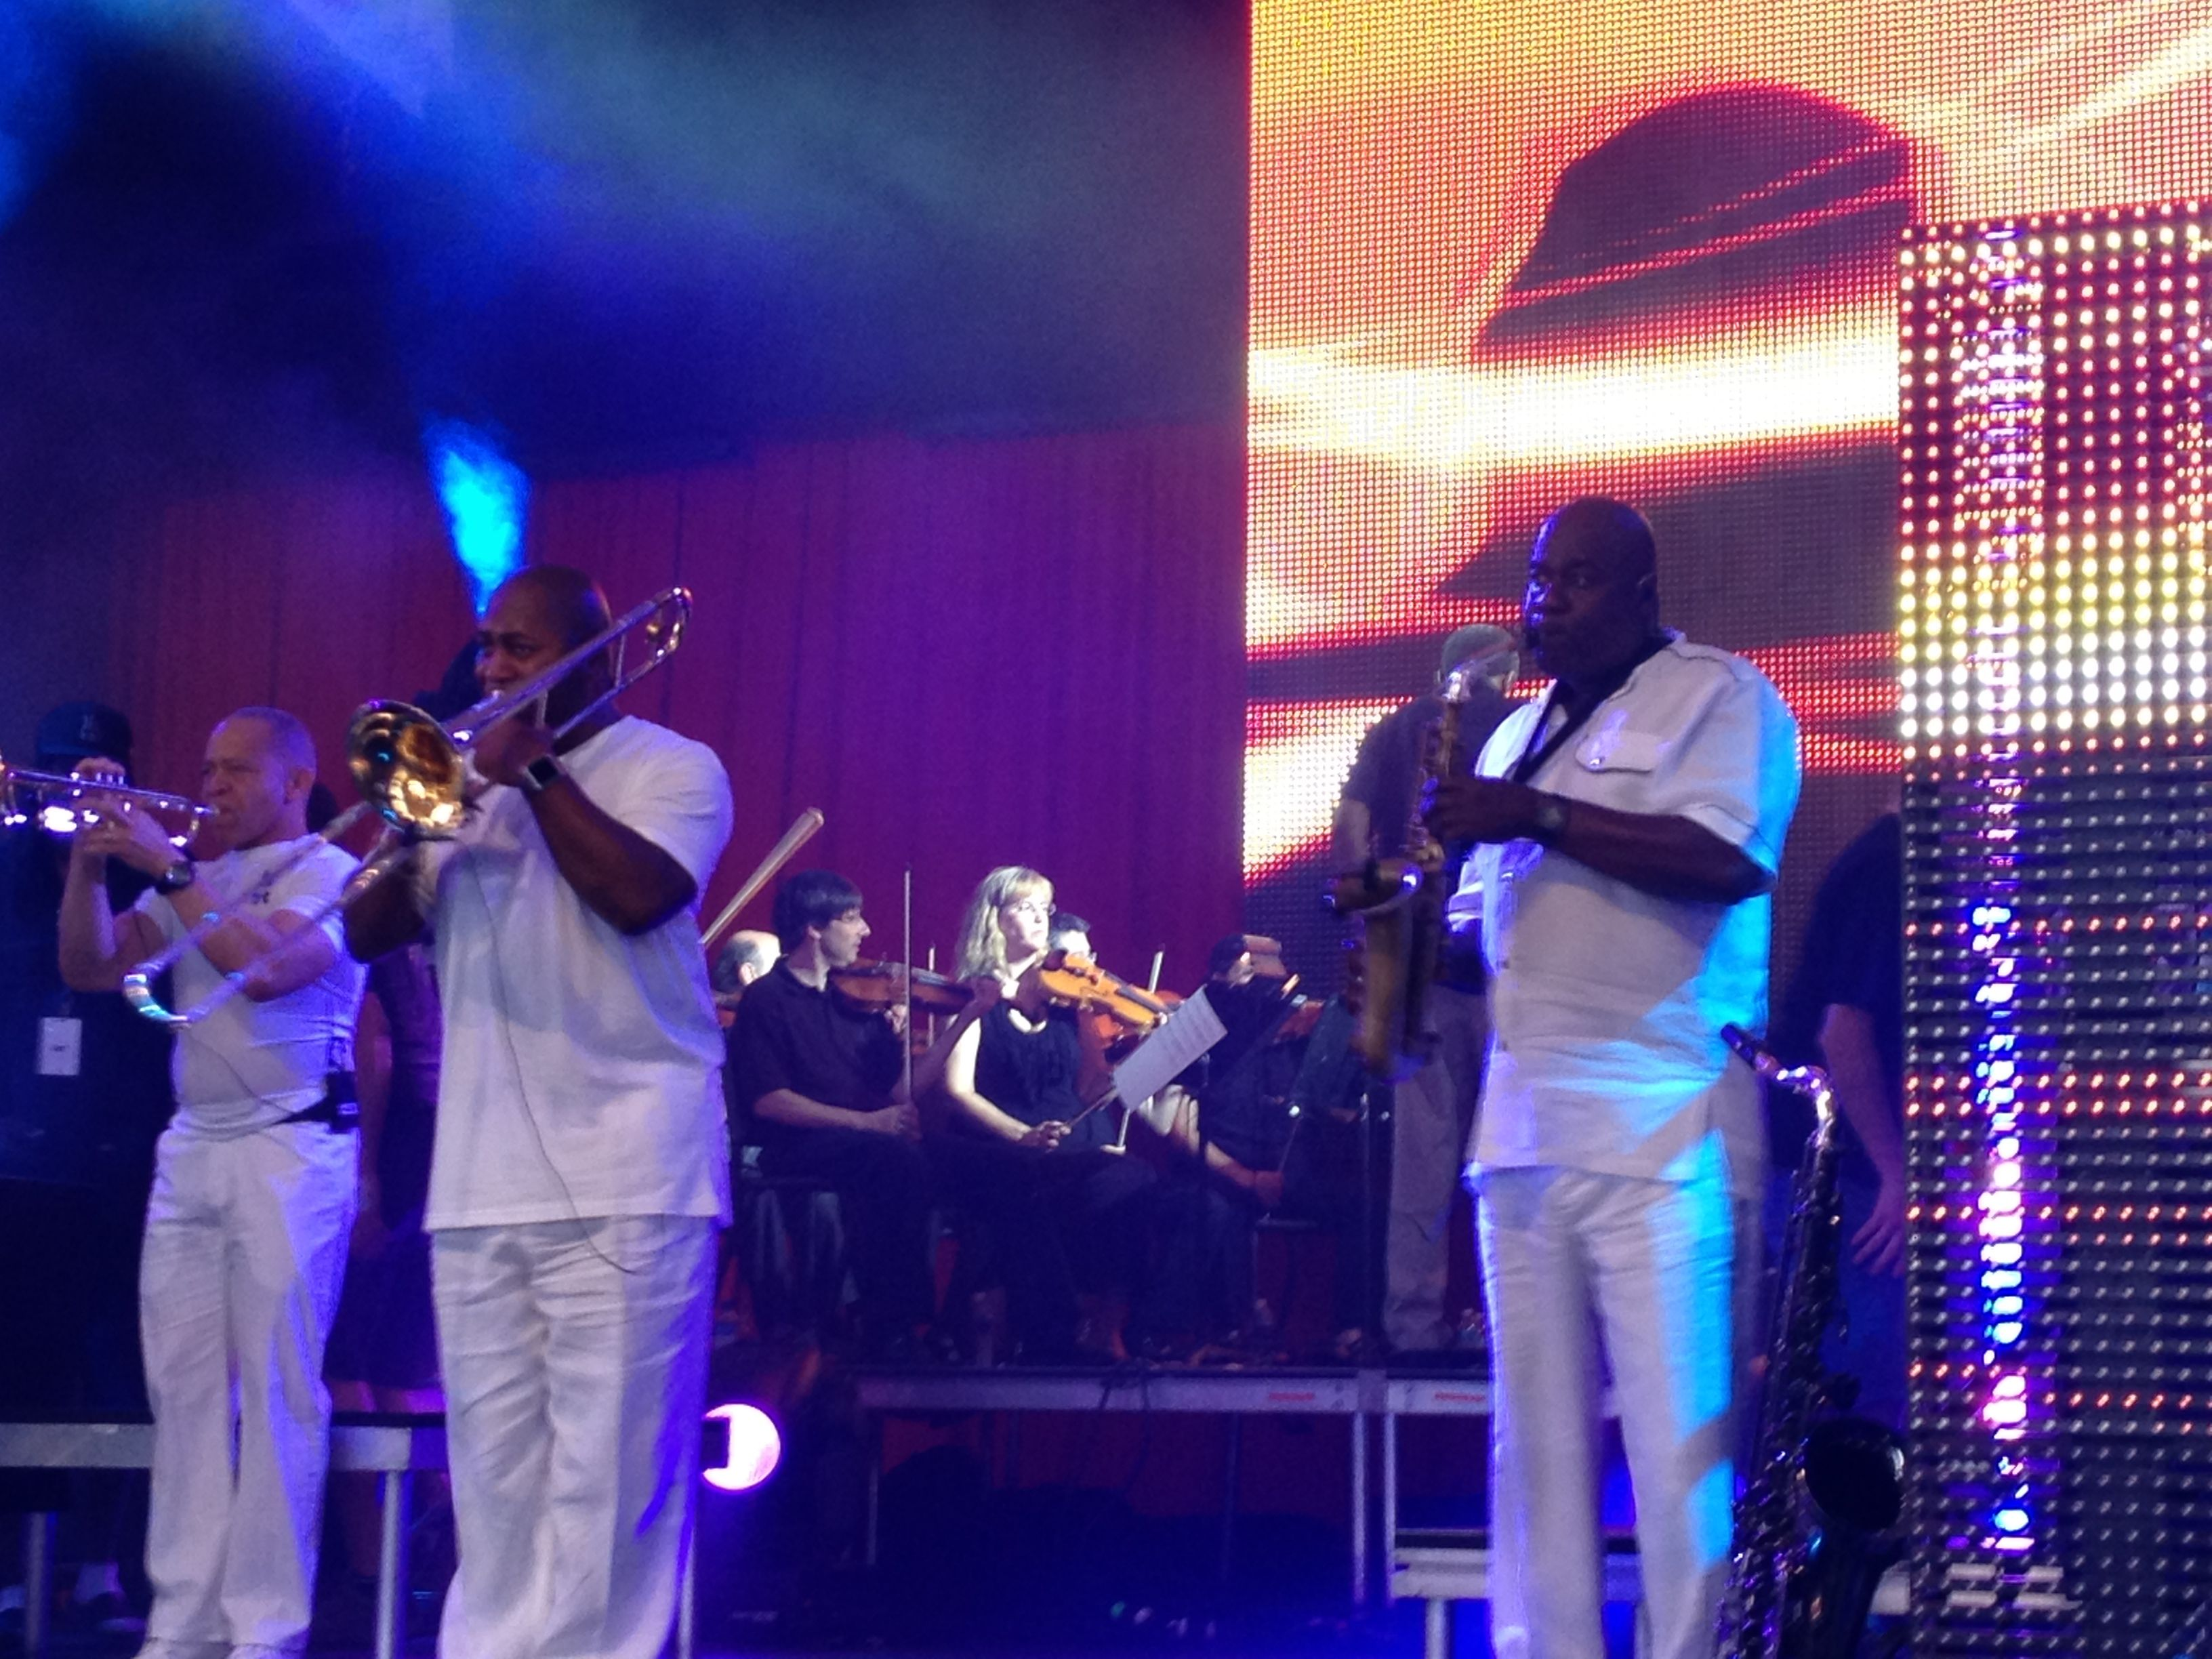 Earth, Wind & Fire with the ASO